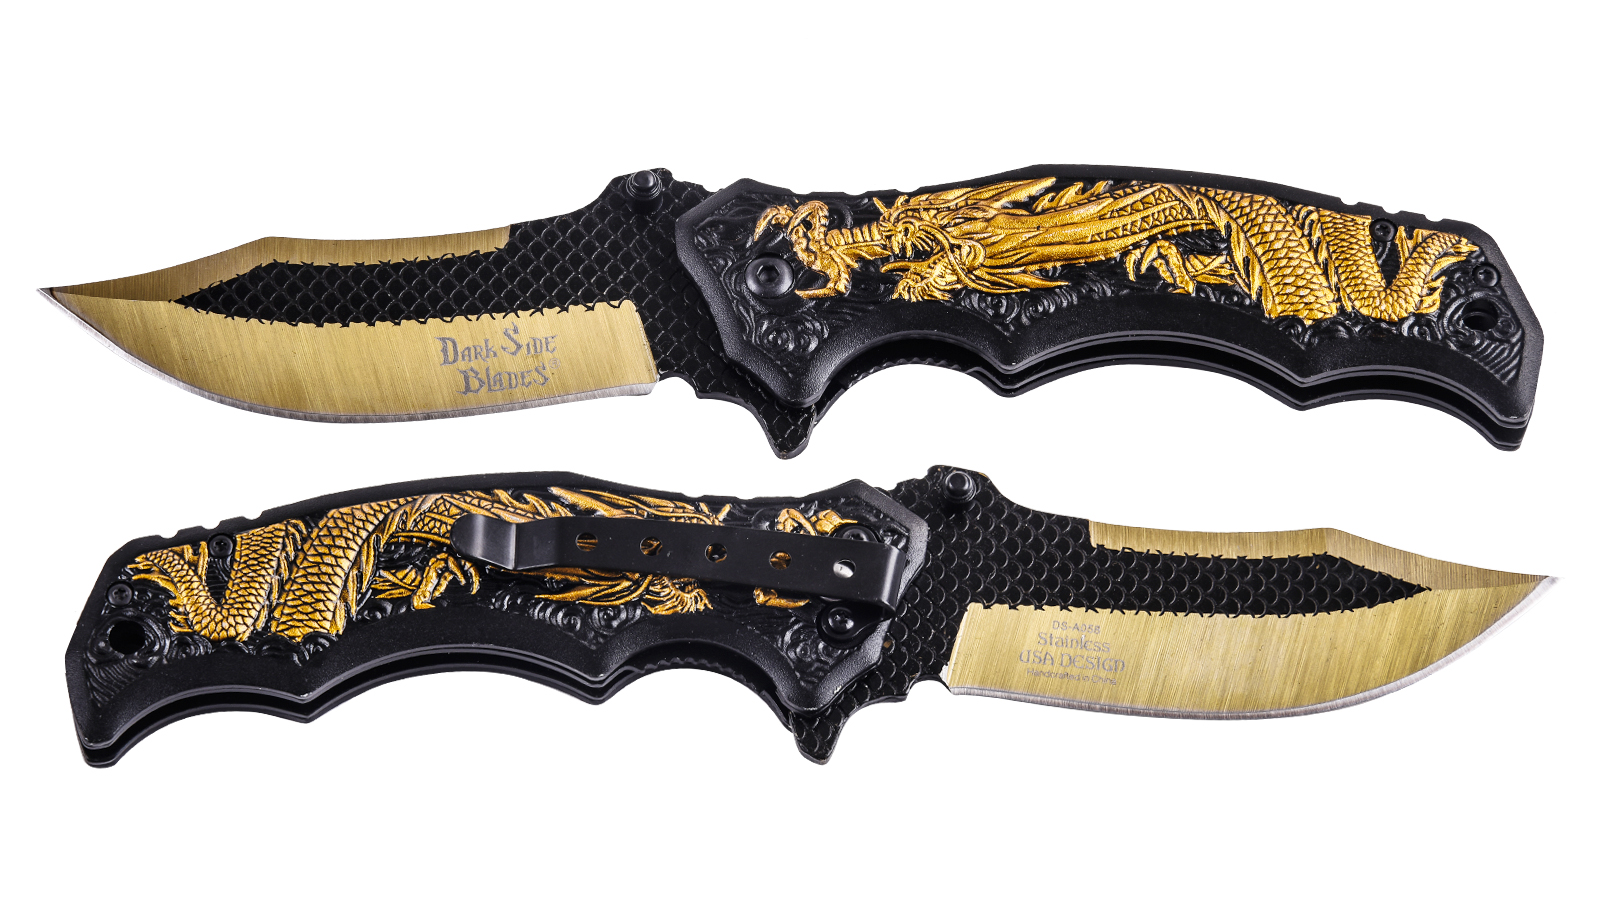 Нож с драконом Dark Side Blades Spring Assisted DS-A058 Gold (США)